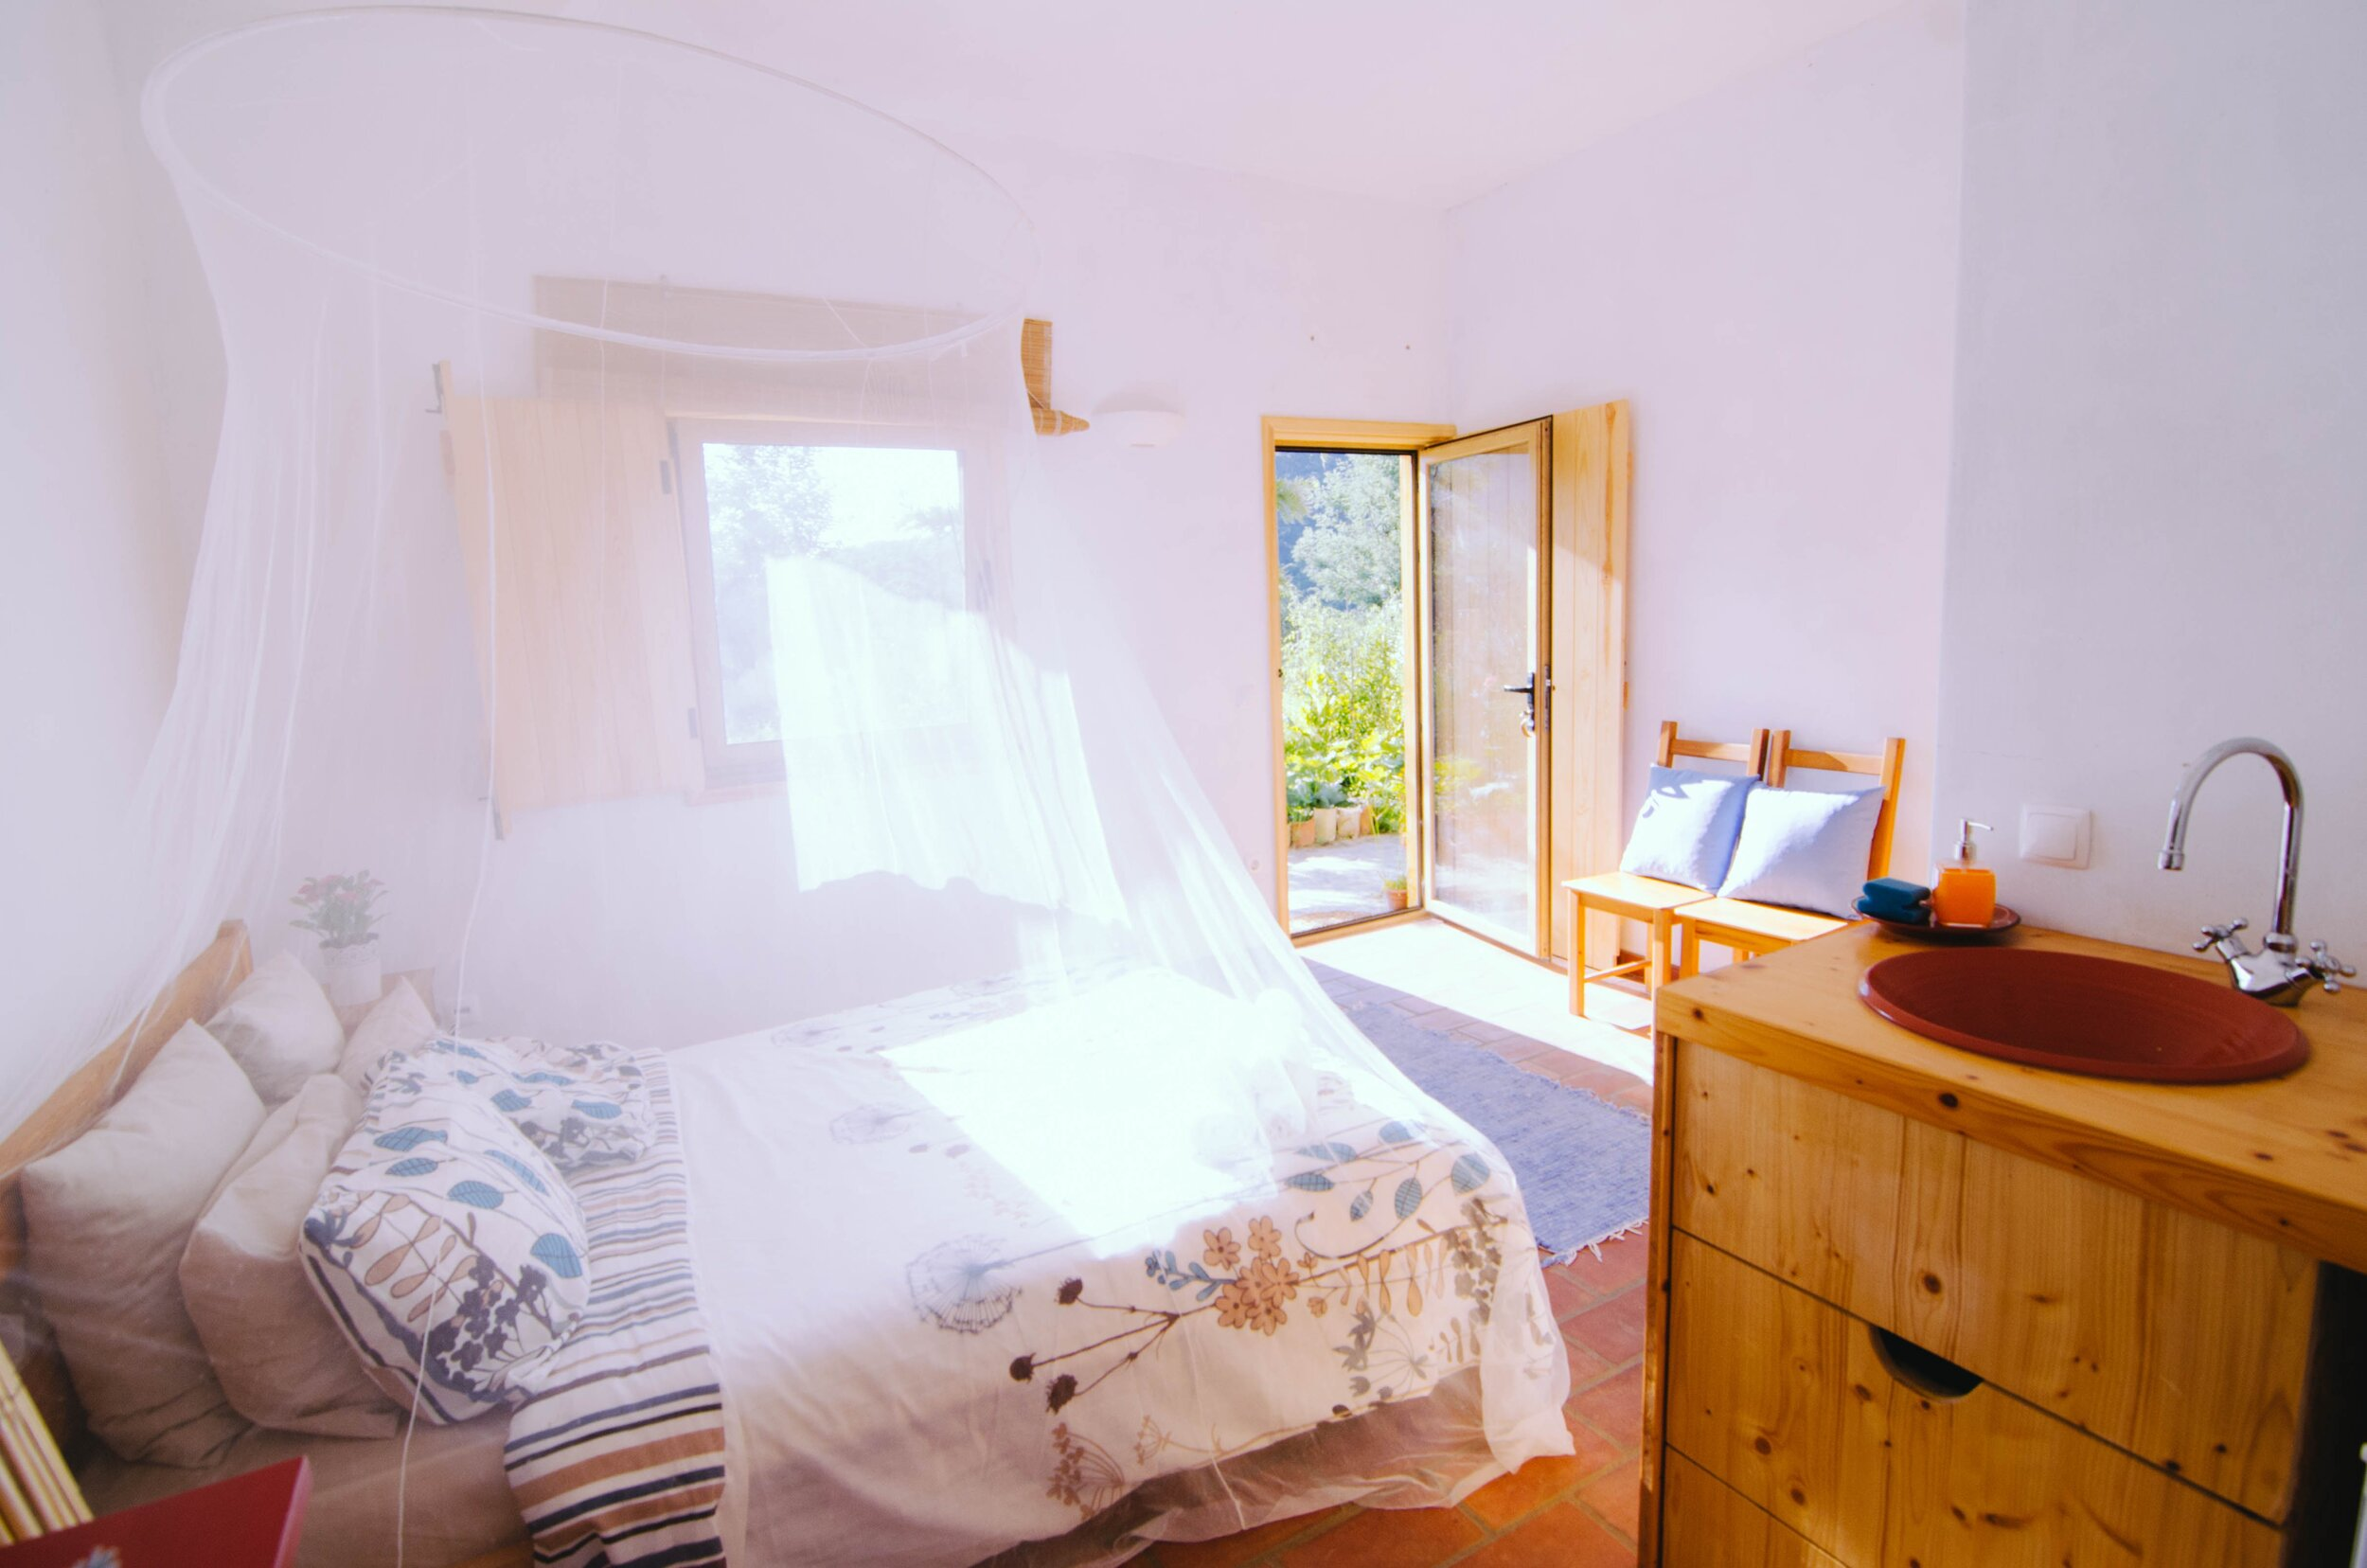 SHARED DOUBLE ROOM   - TWIN BED  - BATHROOM / SHOWER INSIDE THE ROOM  - KITCHENETTE   PRICE: 1280 EUR / PER PERSON